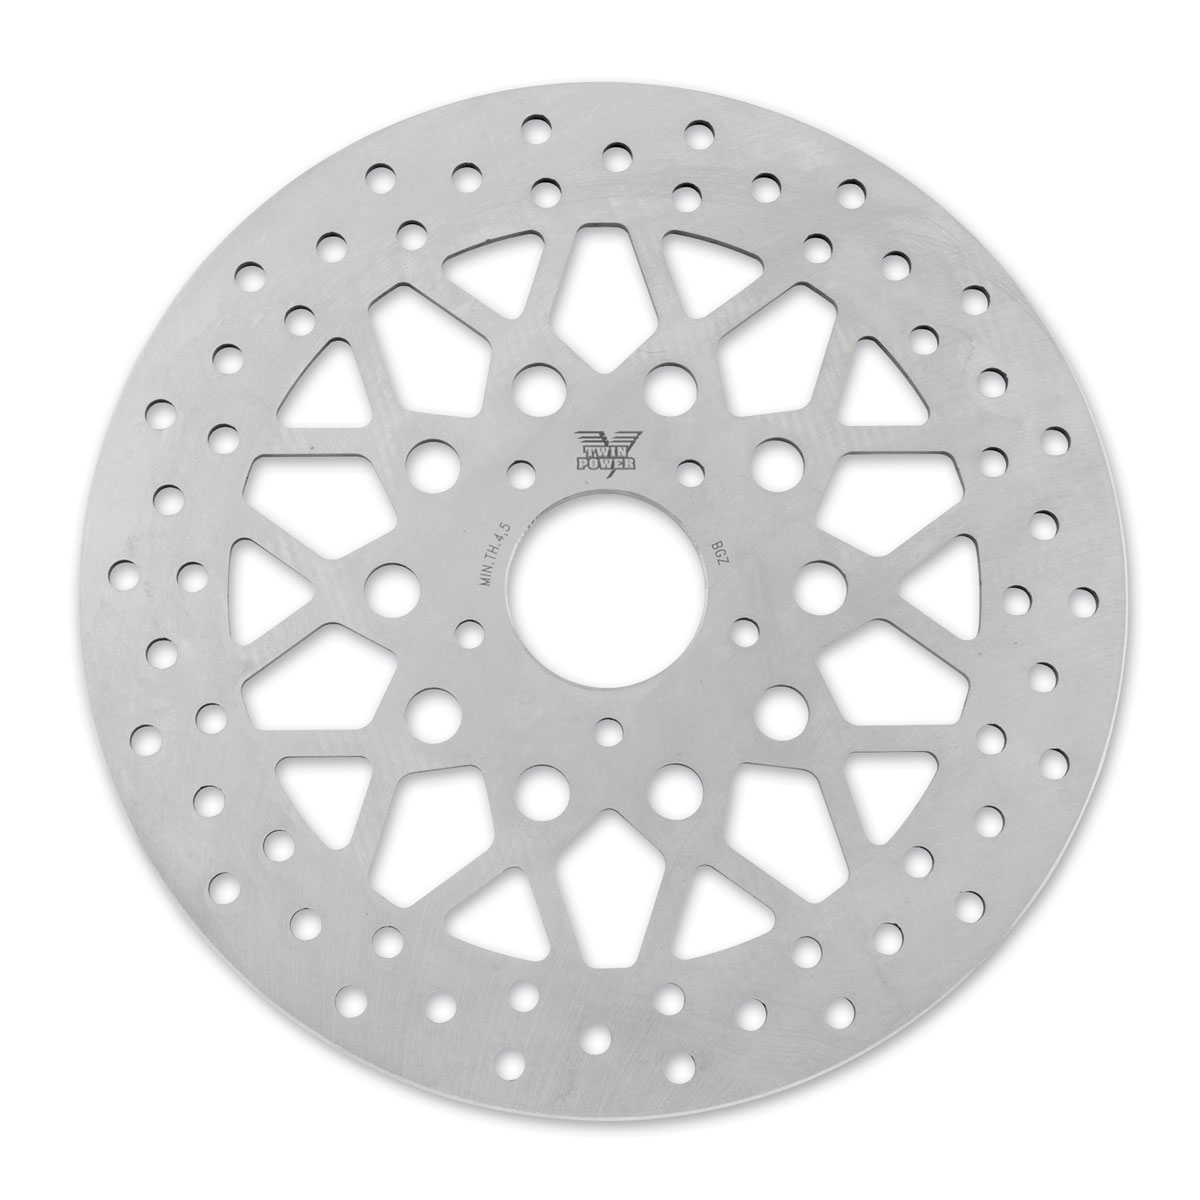 Twin Power Front Non Floating Mesh Design Brake Rotor